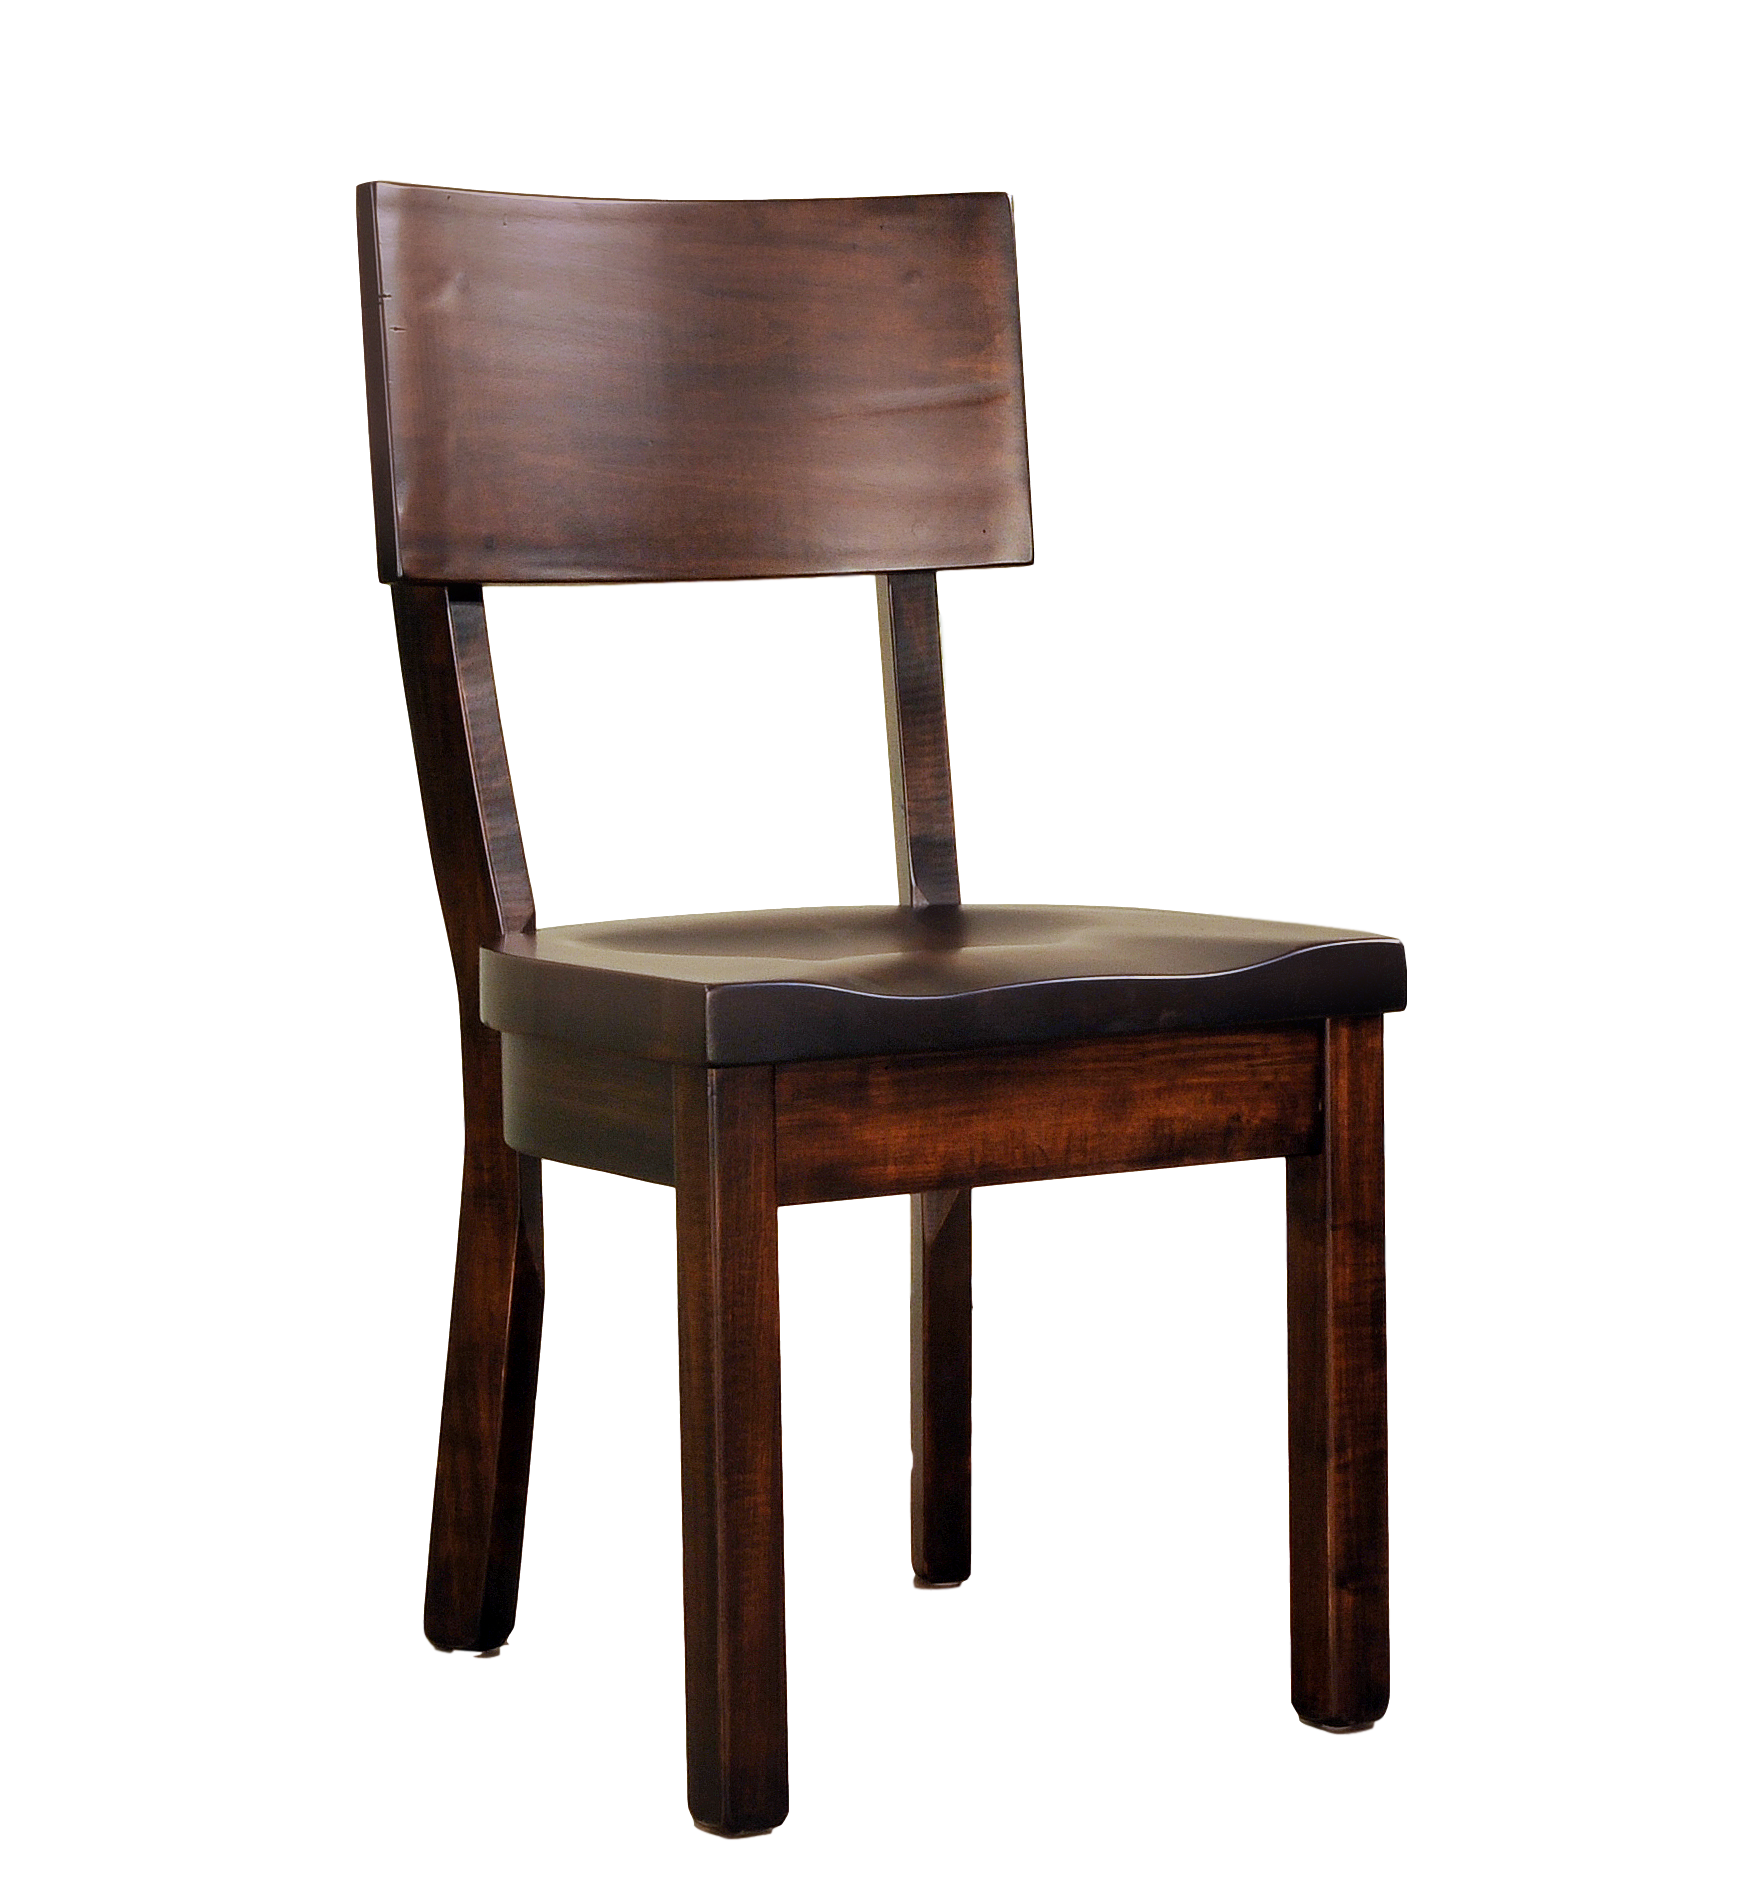 Museum Dining Chair Home Envy Furnishings Solid Wood Furniture Store